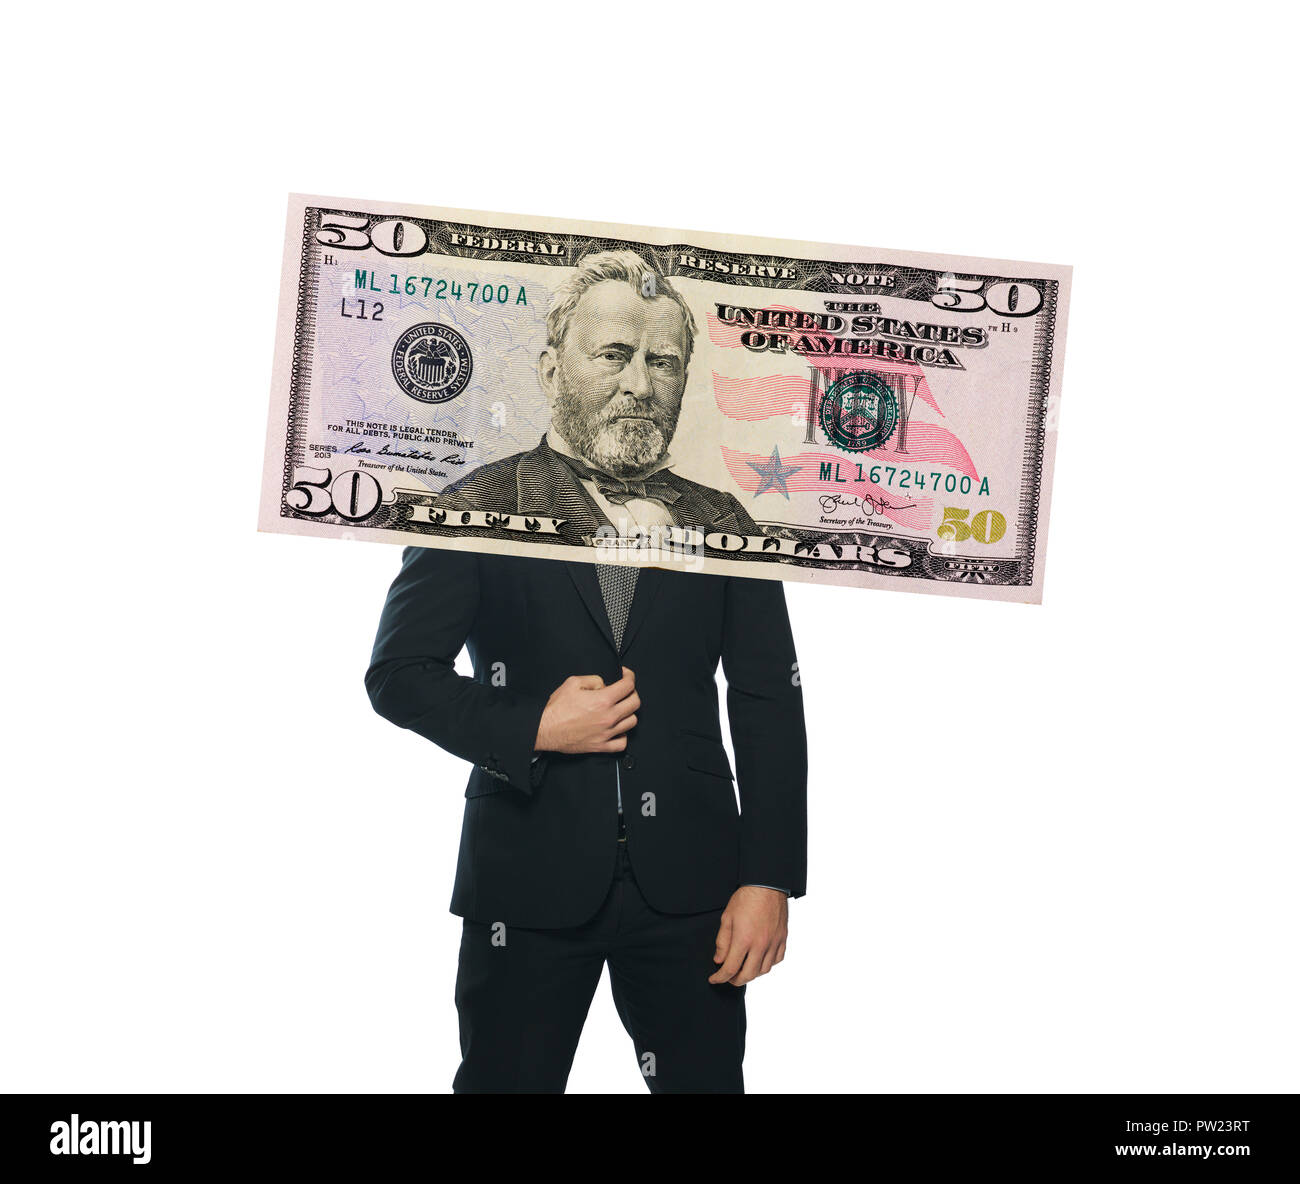 Concept A Man with a Suit Standing, Covering his Head, with a Head of President Grant of a $50 $ Fifty Dollar Bill, Empowering Money, Right Exchange,  - Stock Image